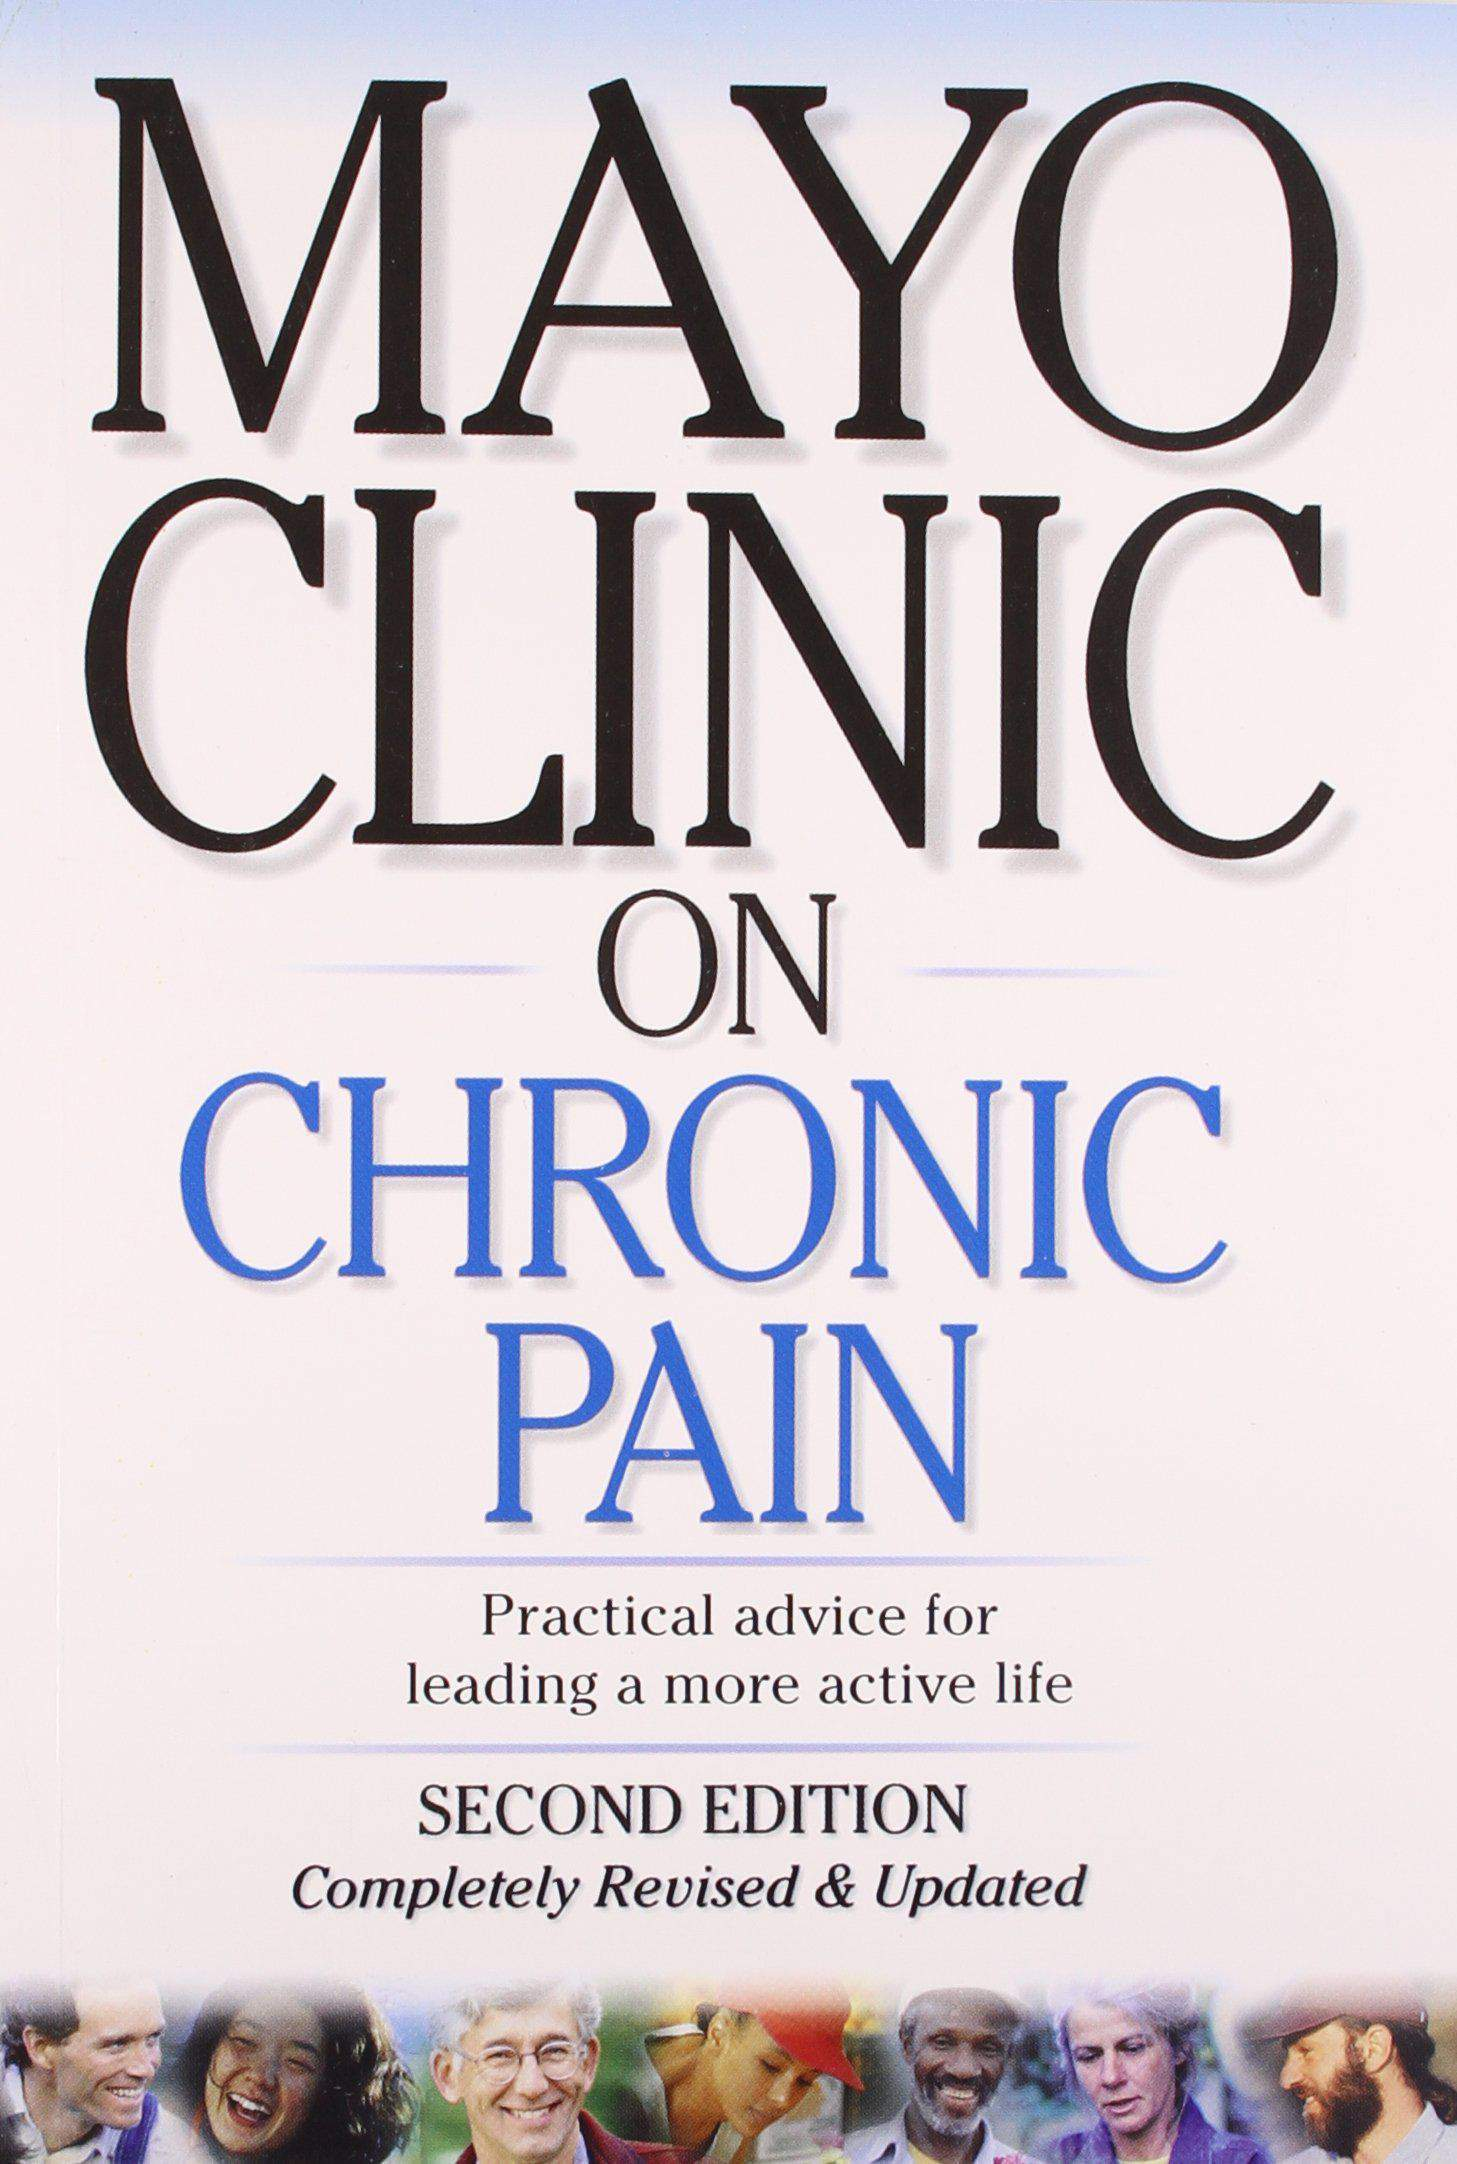 Mayo Clinic on Chronic Pain -